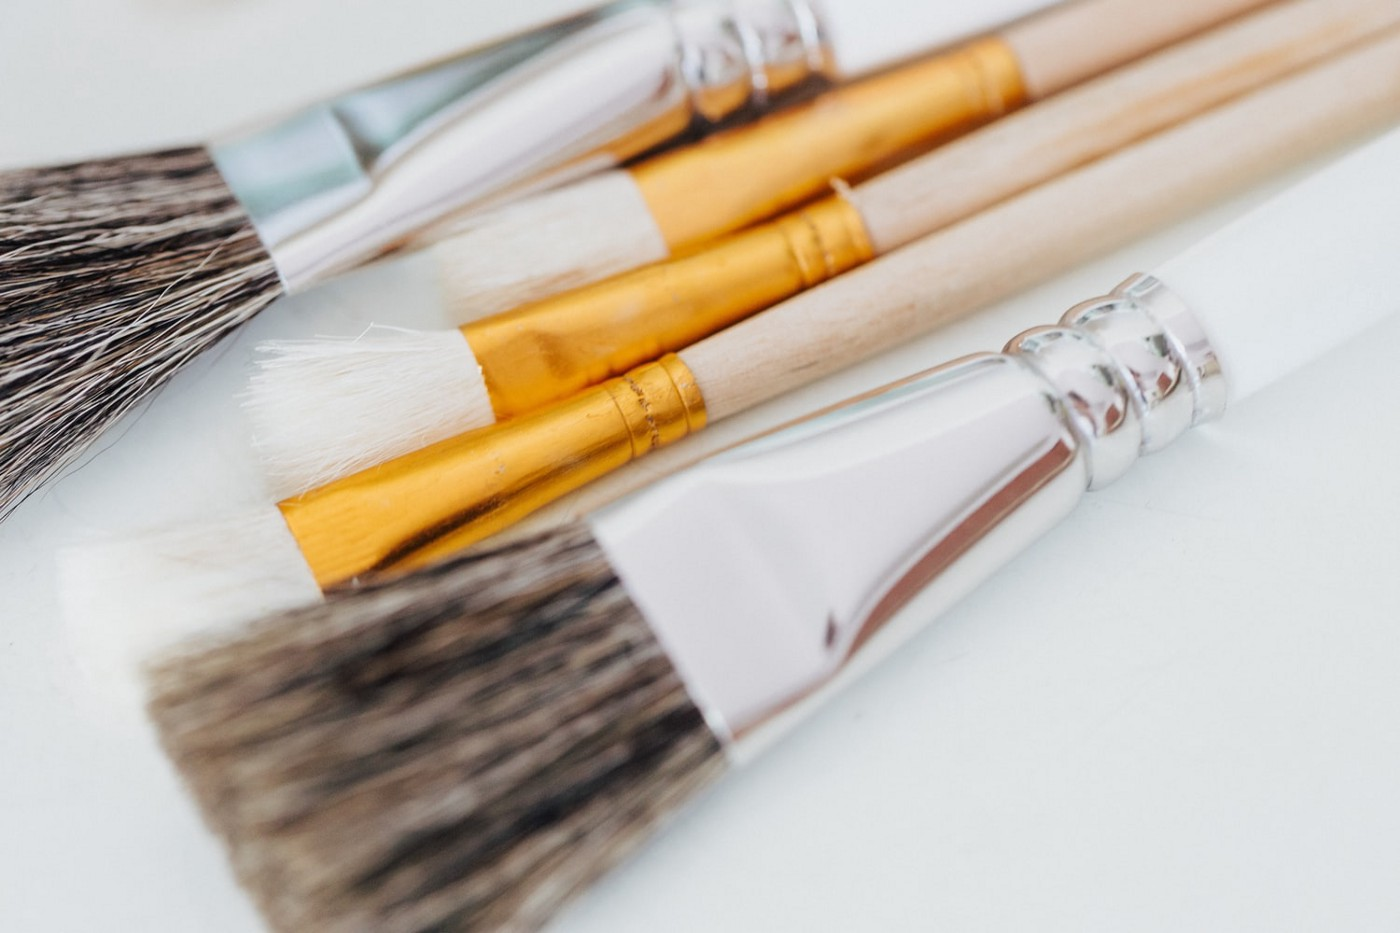 Five paintbrushes side by side